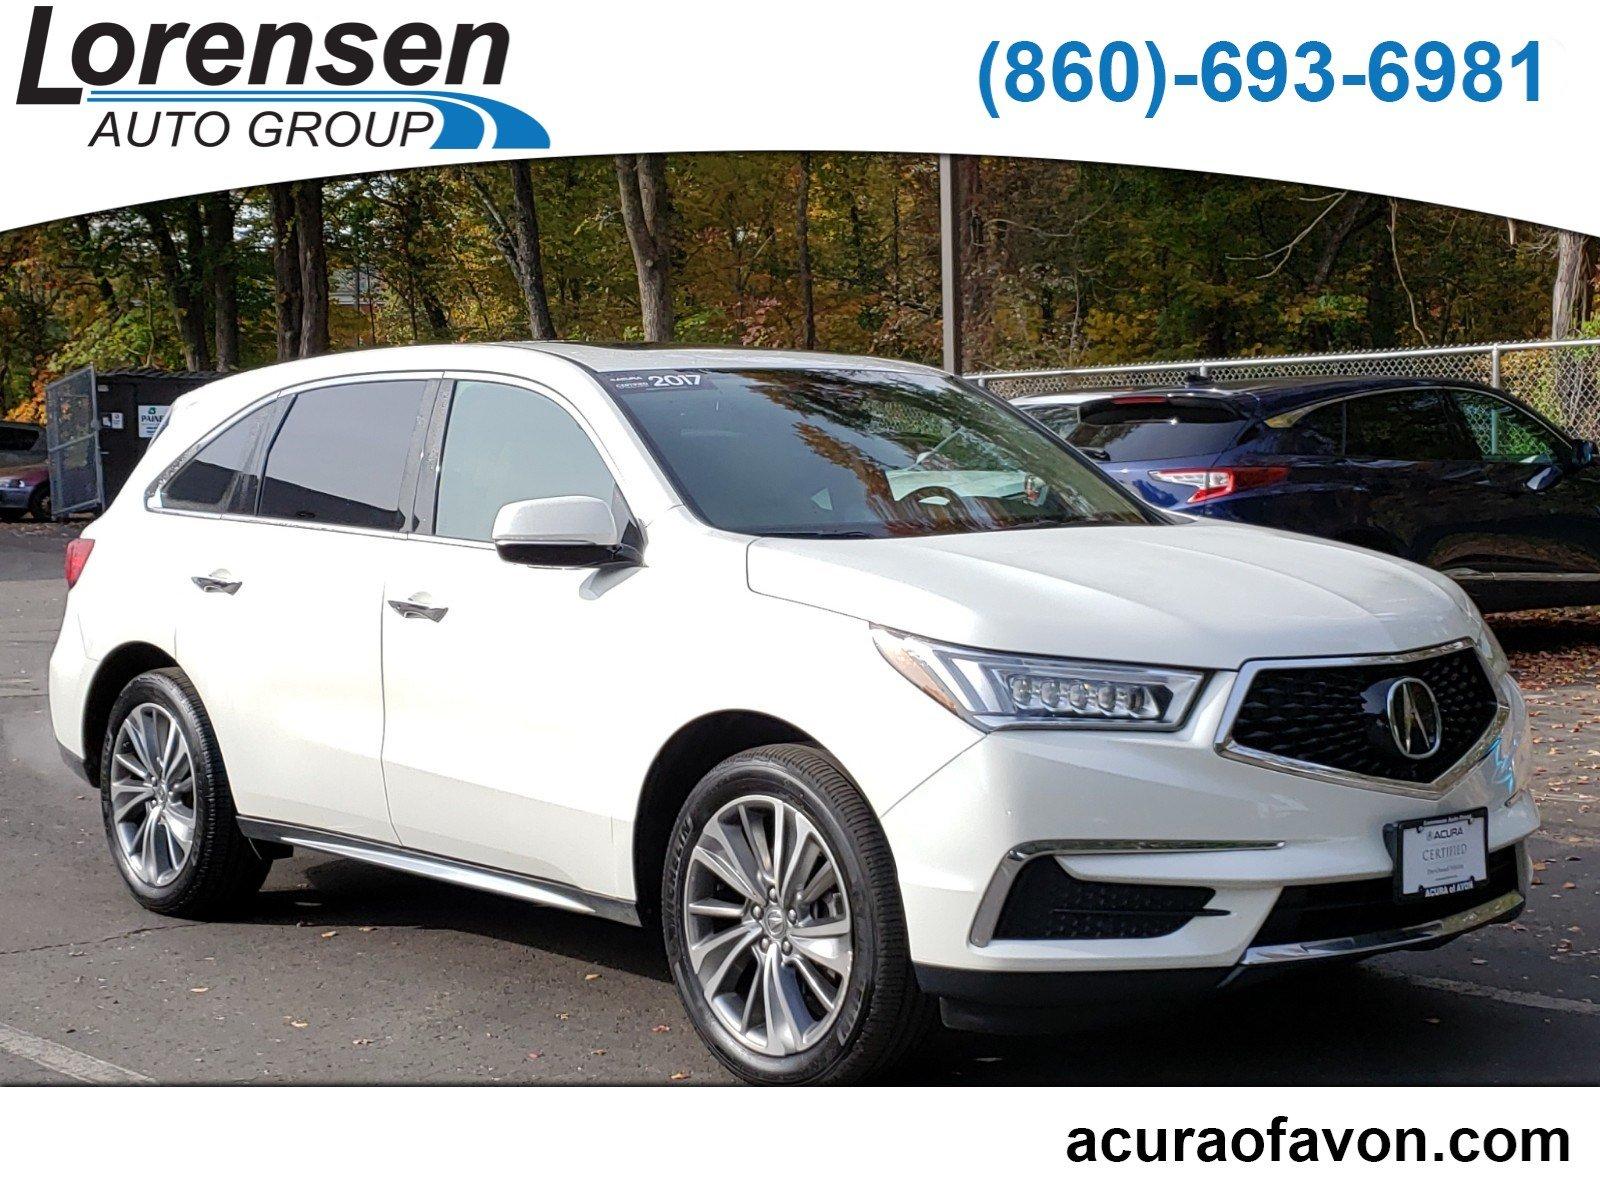 Certified Pre-Owned 2017 Acura MDX w/Technology/Entertainment Pkg